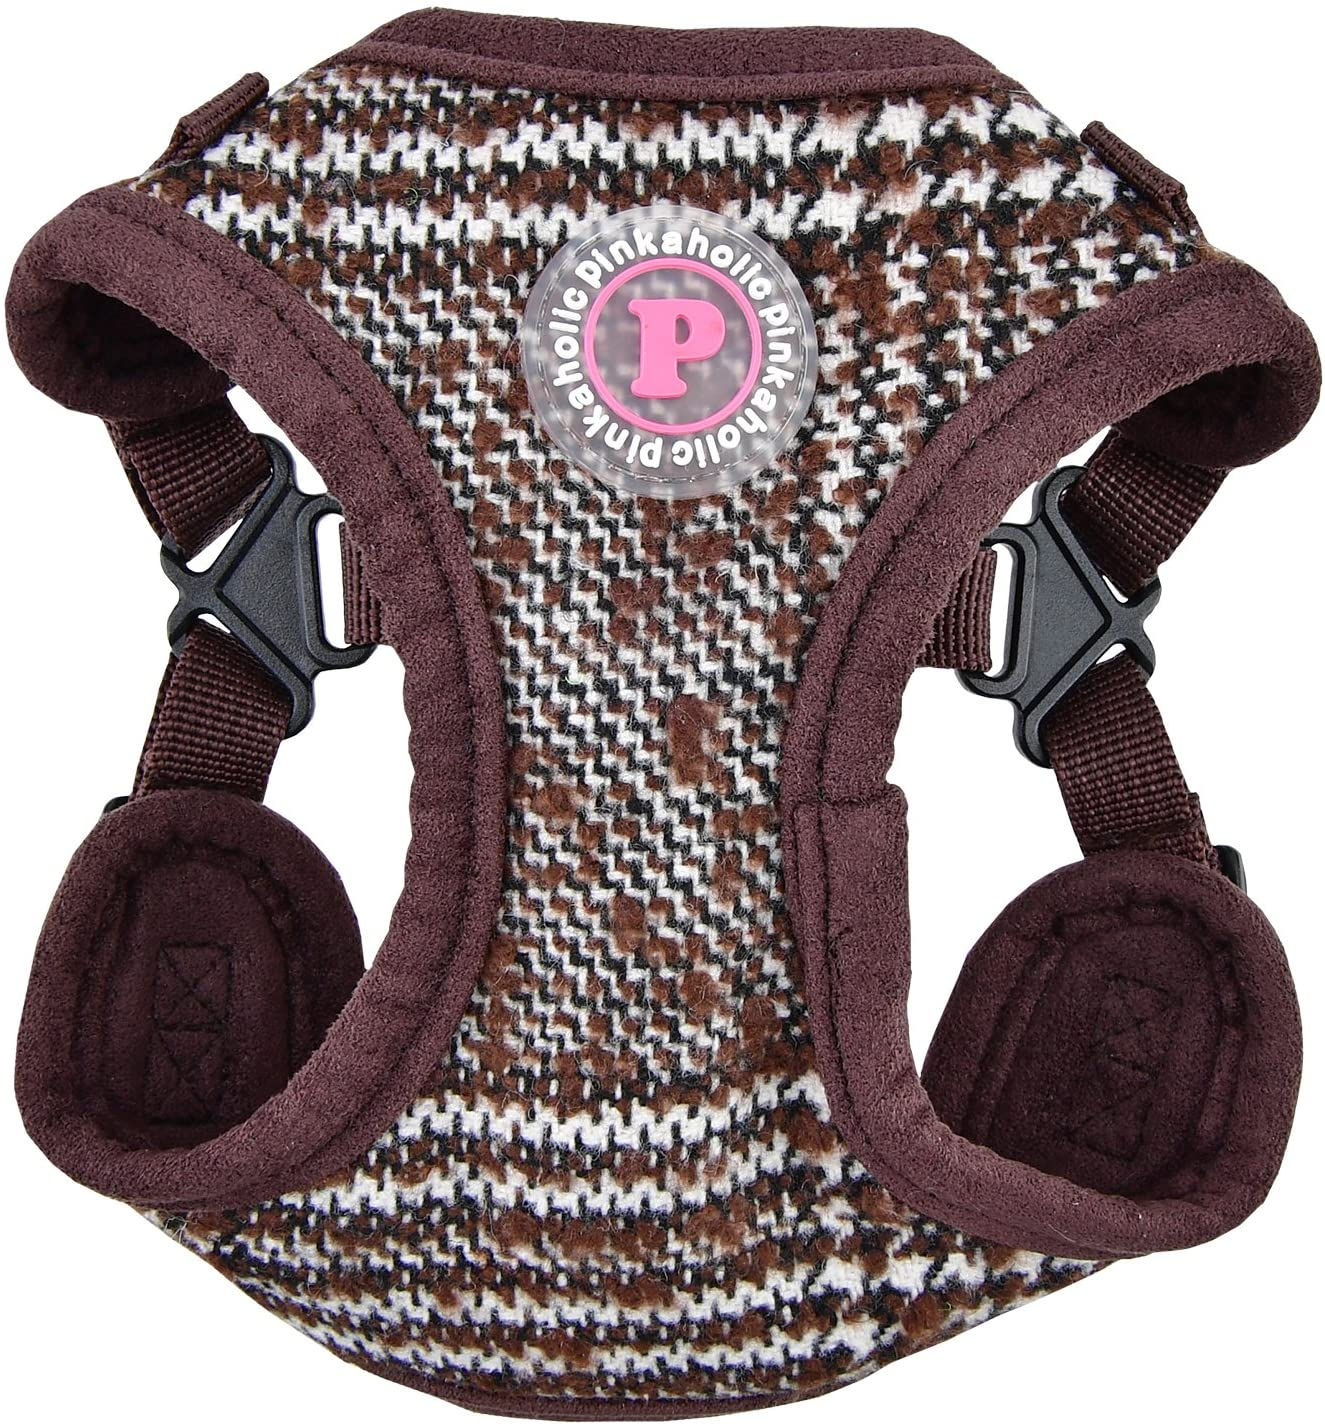 Pinkaholic New York DA Vinci Harness C - Brown - S